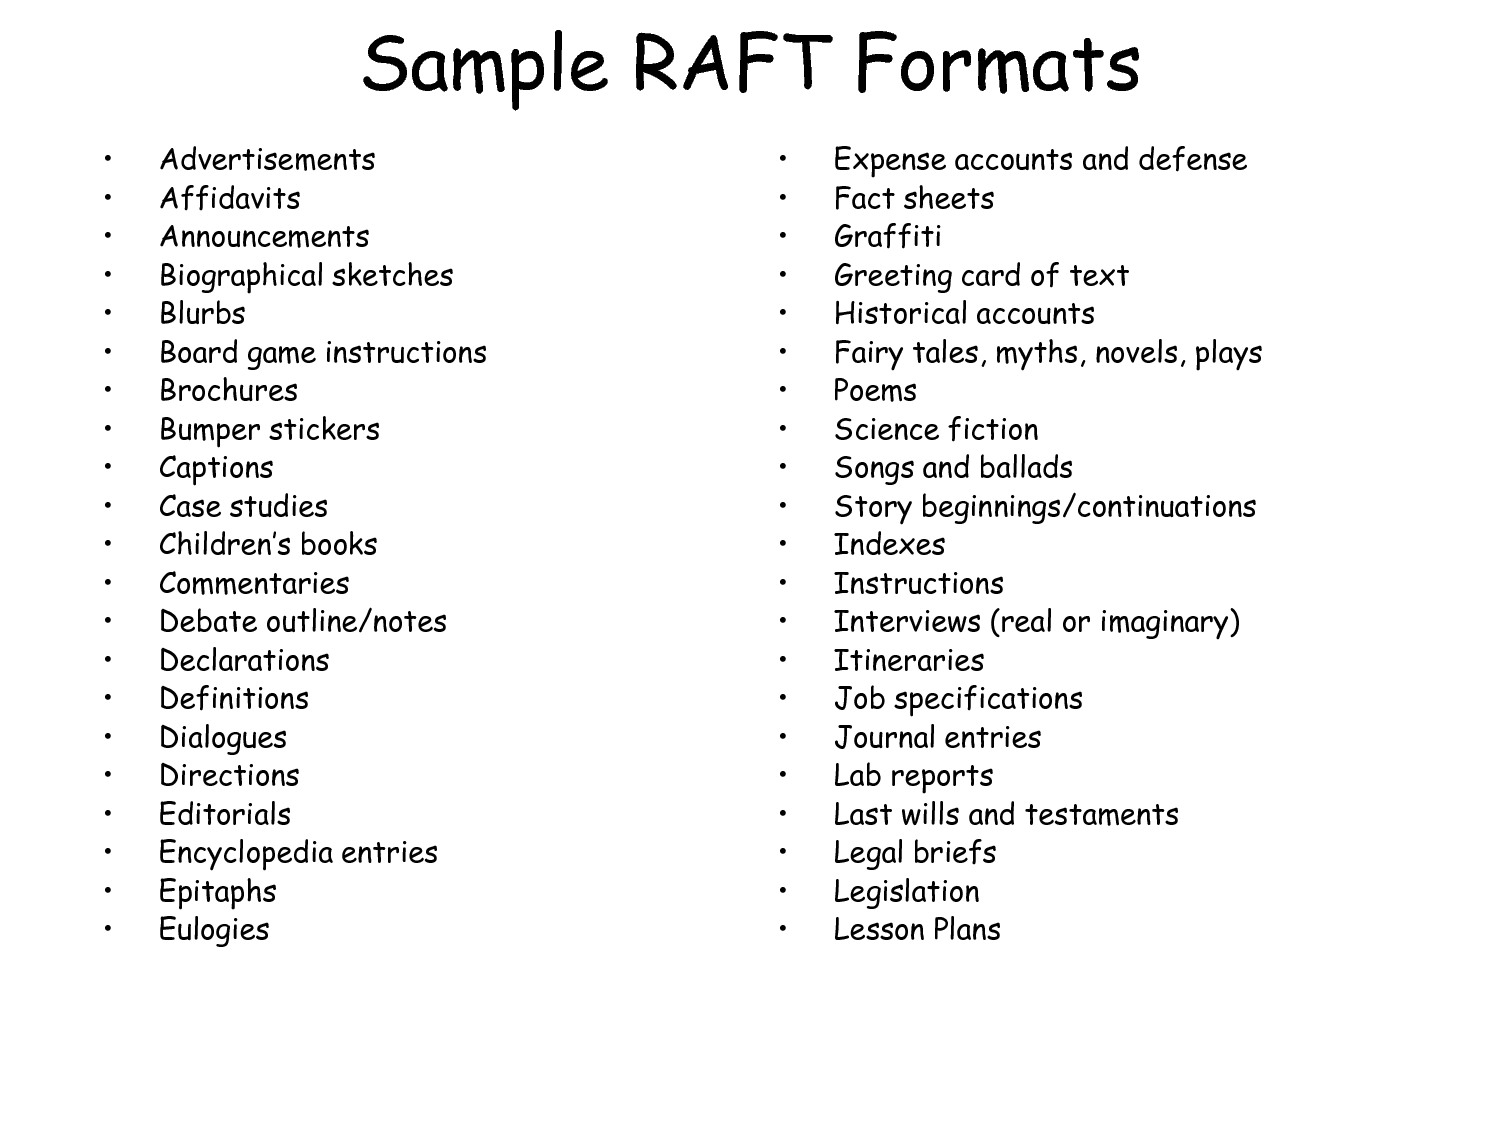 Raft Examples For English Cstoc Docs Sample